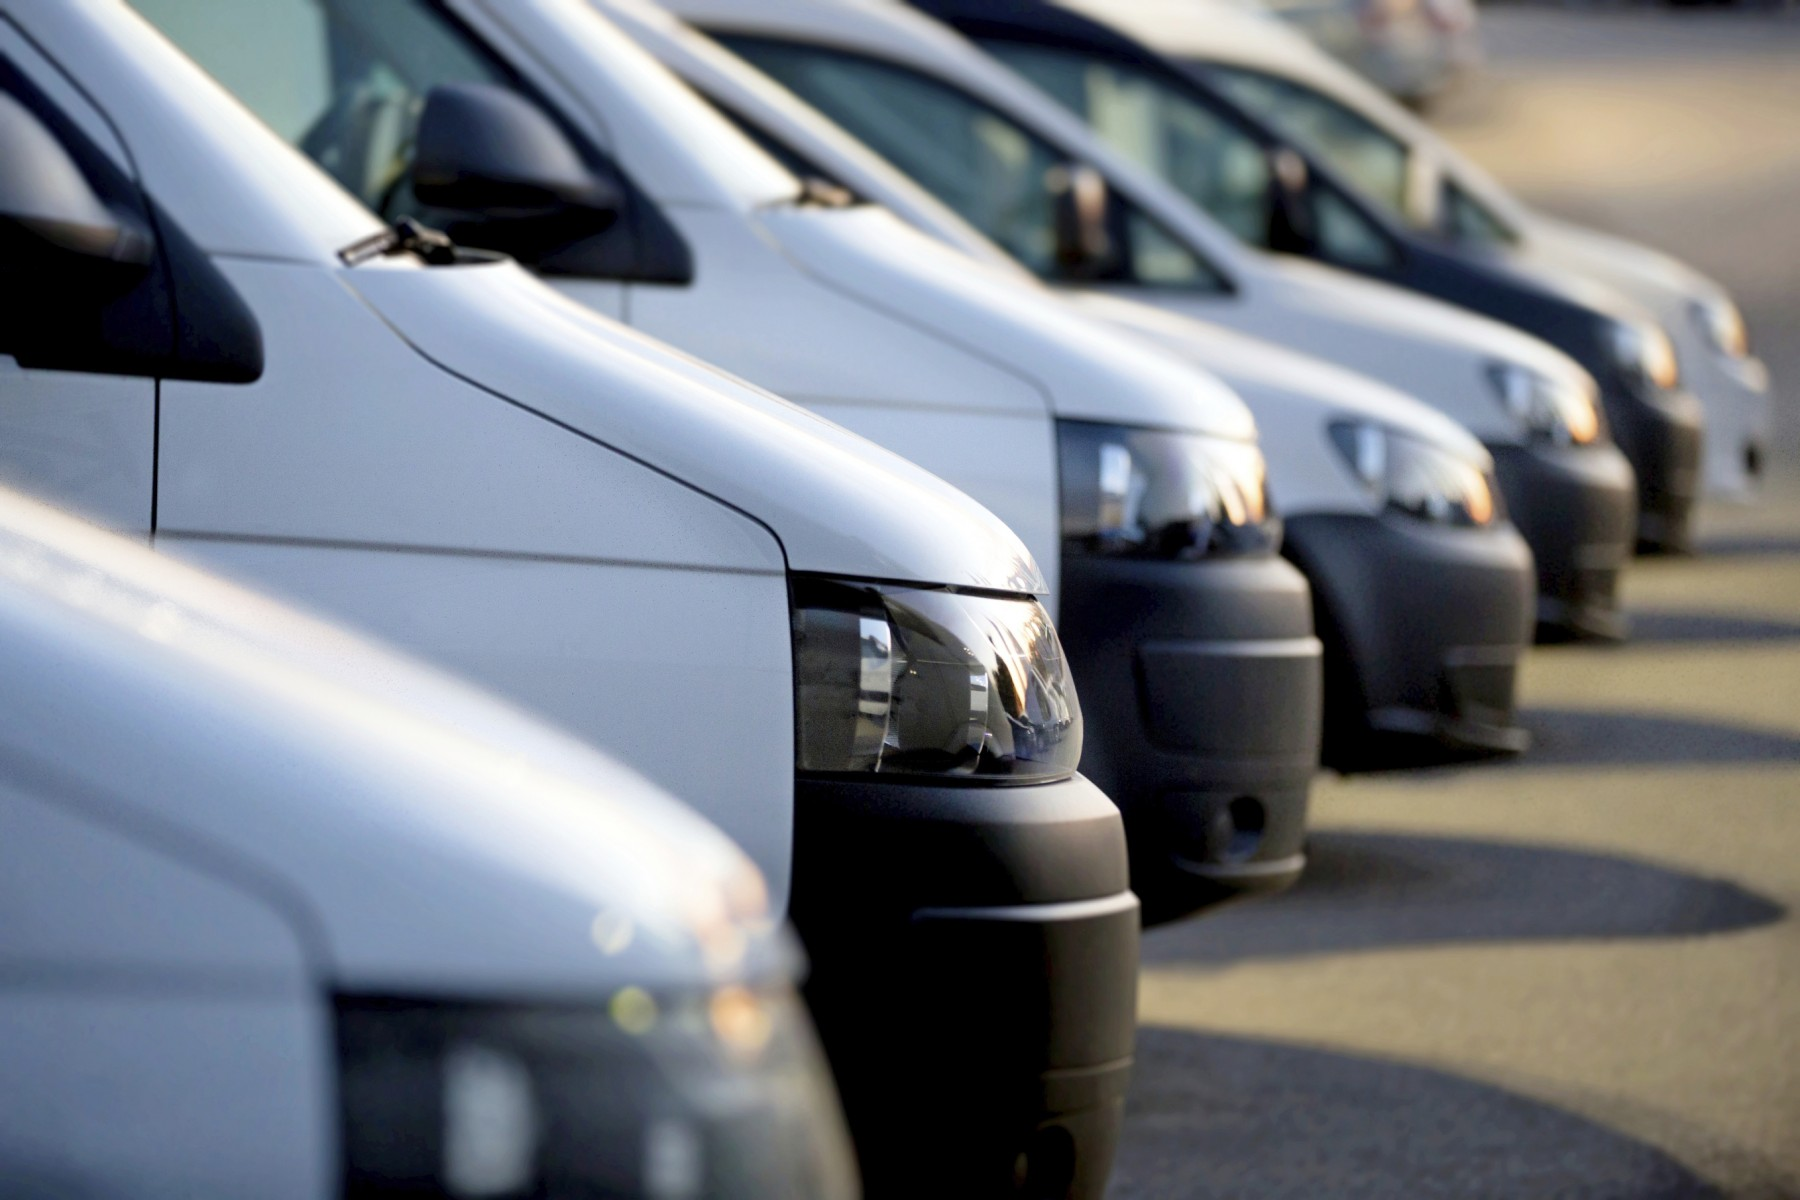 Fleet Management Services Contracts